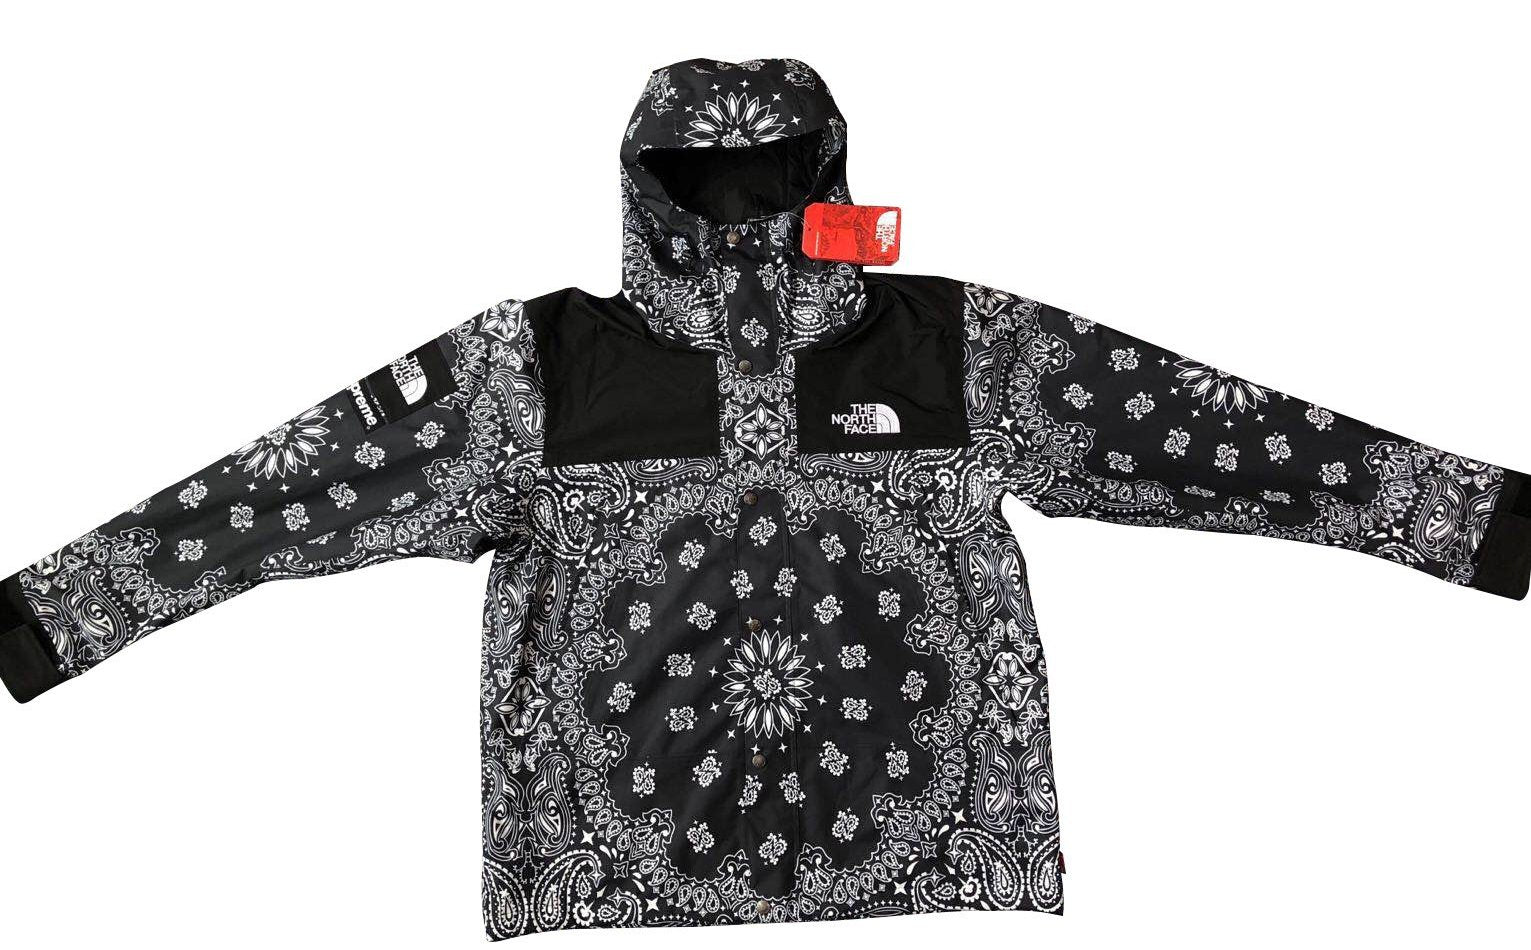 Supreme x The North Face Bandana Mountain Jacket FW14 – King Sneaker ... 7a5cd813f